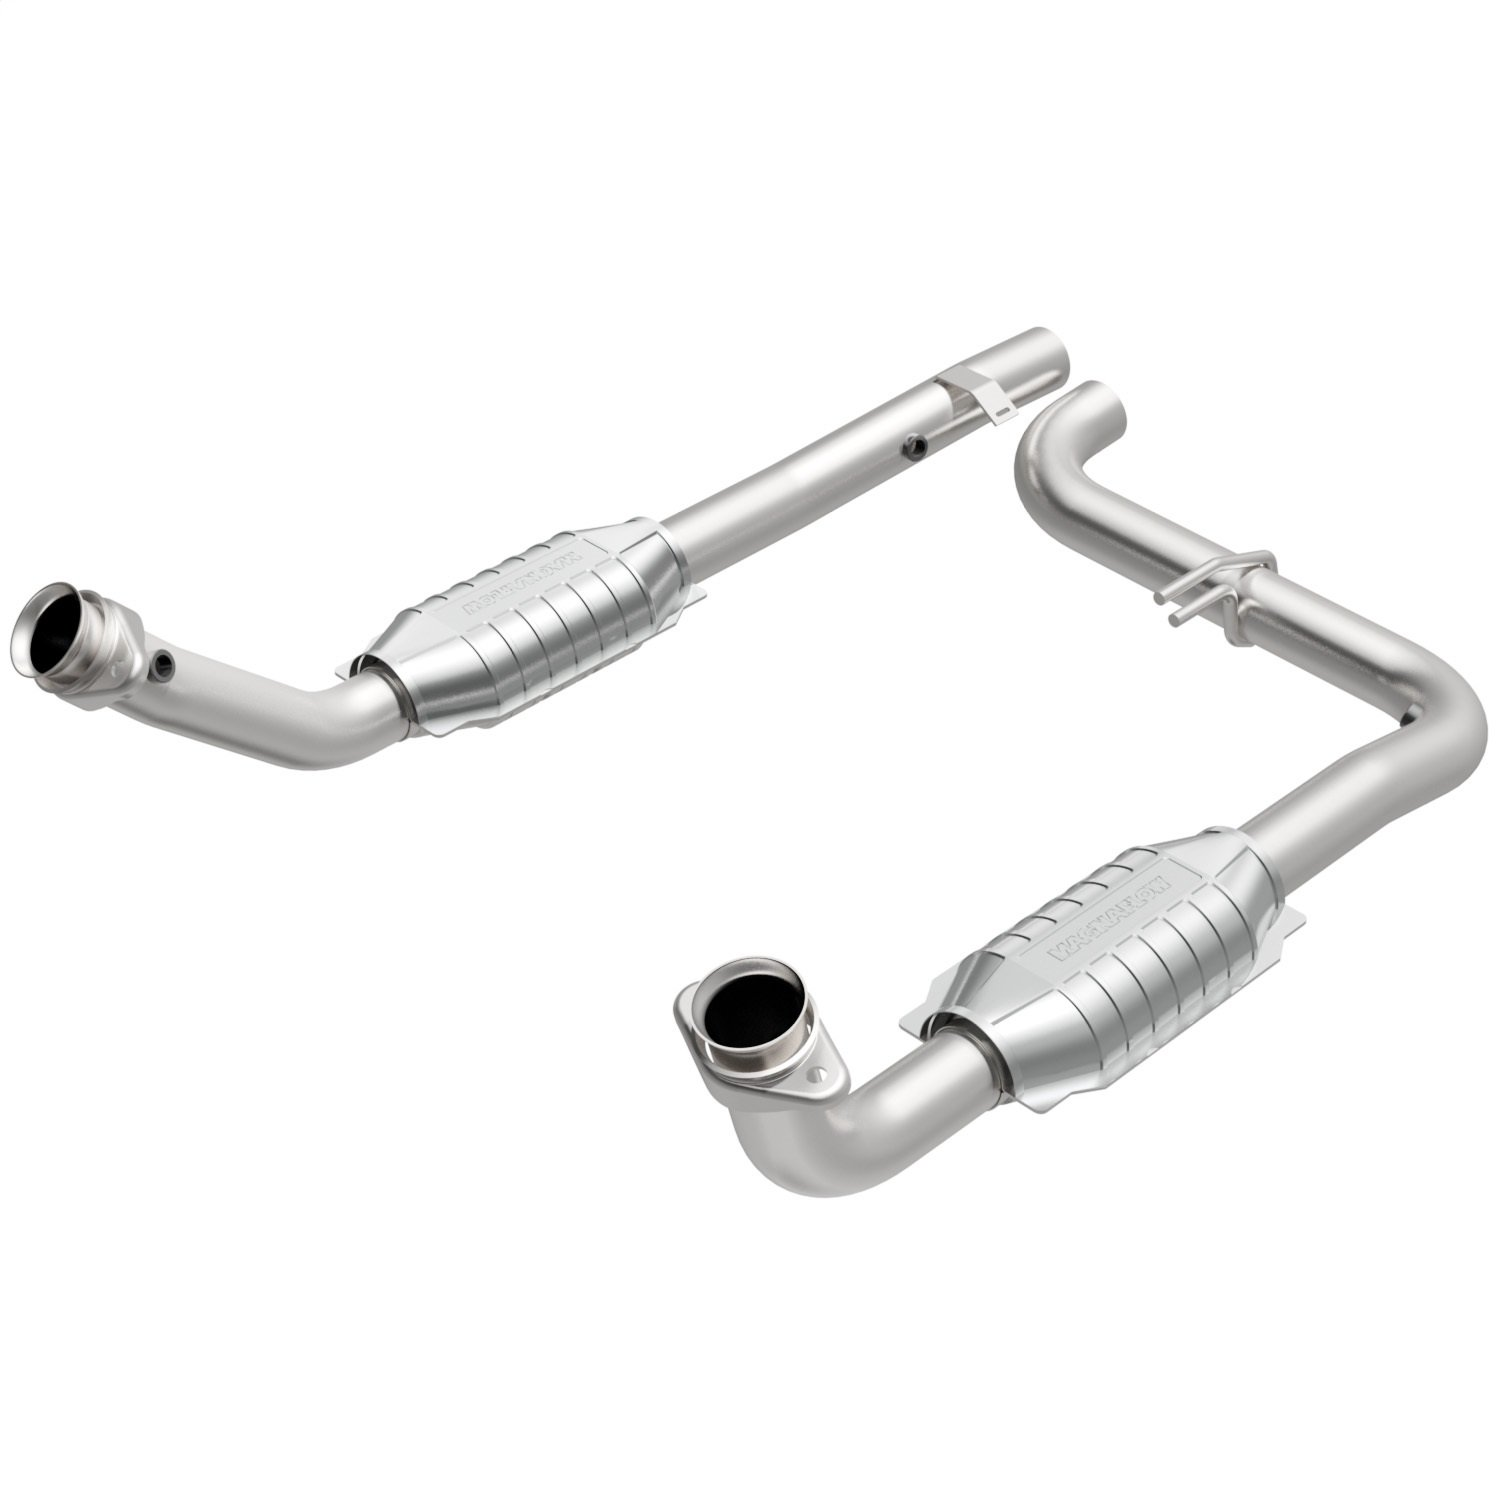 MagnaFlow 50836 Direct Fit Catalytic Converter Non CARB compliant